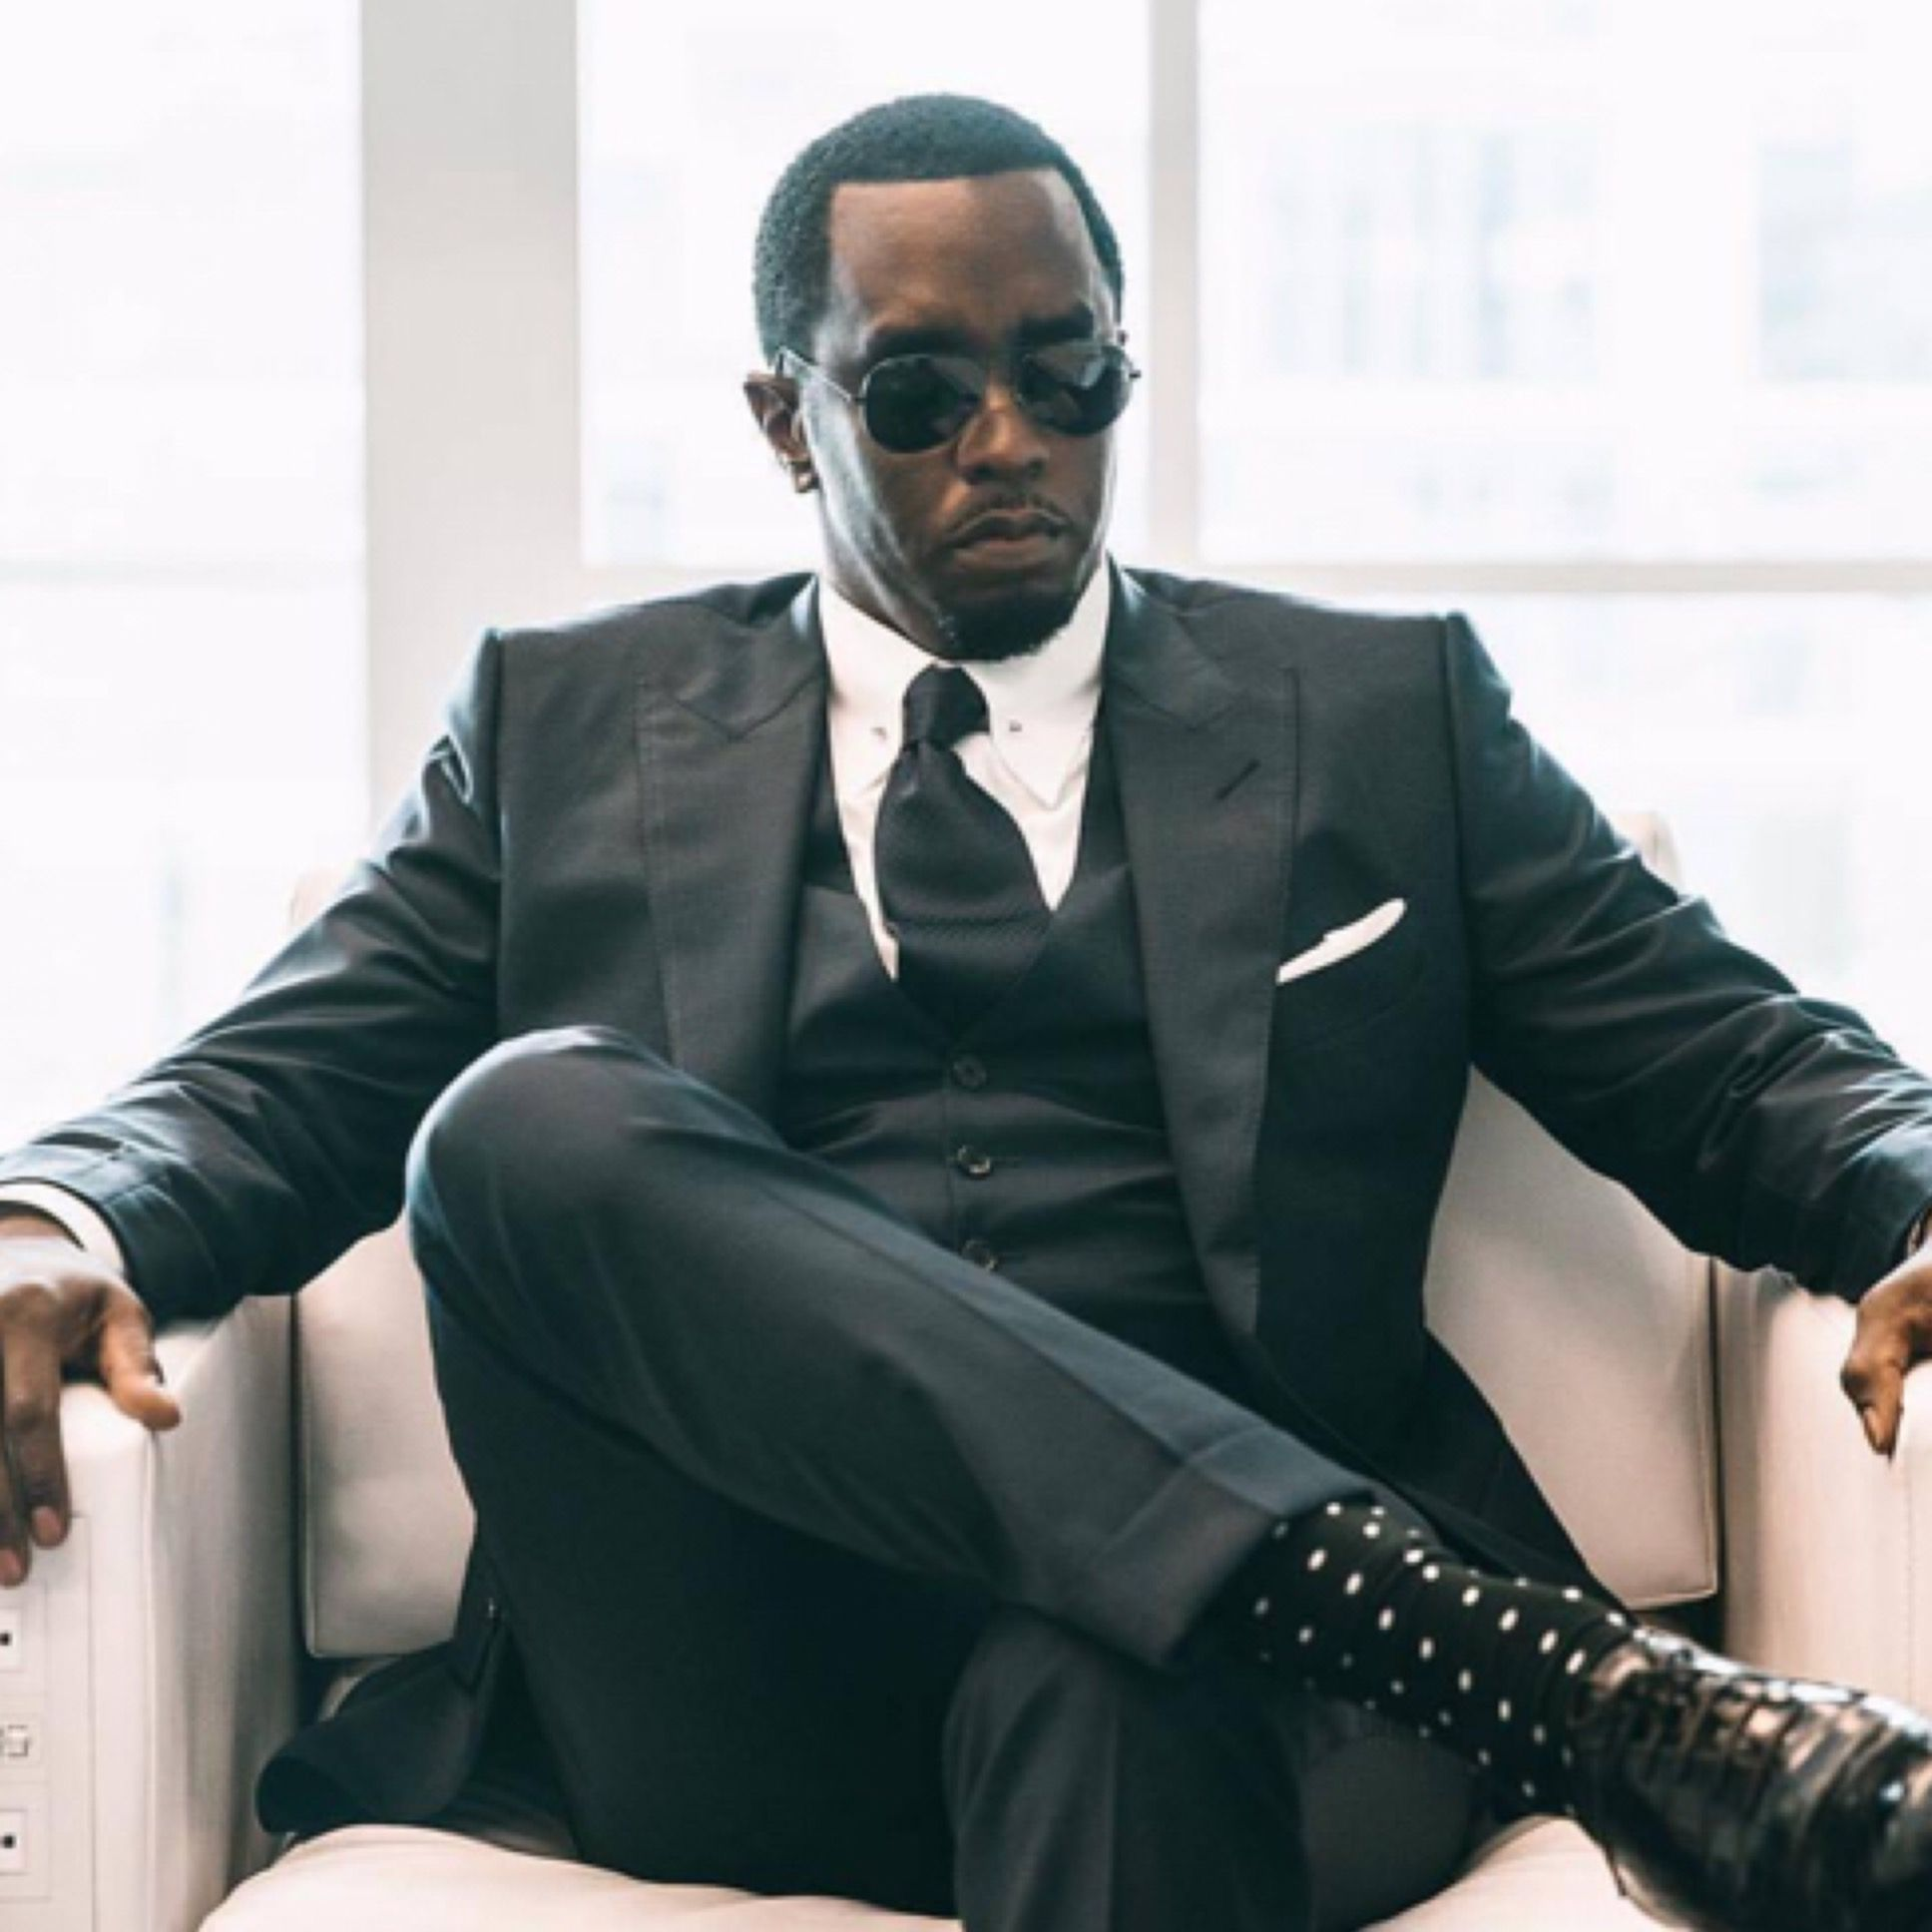 A Biography of a Music Mogul Sean Diddy Combs